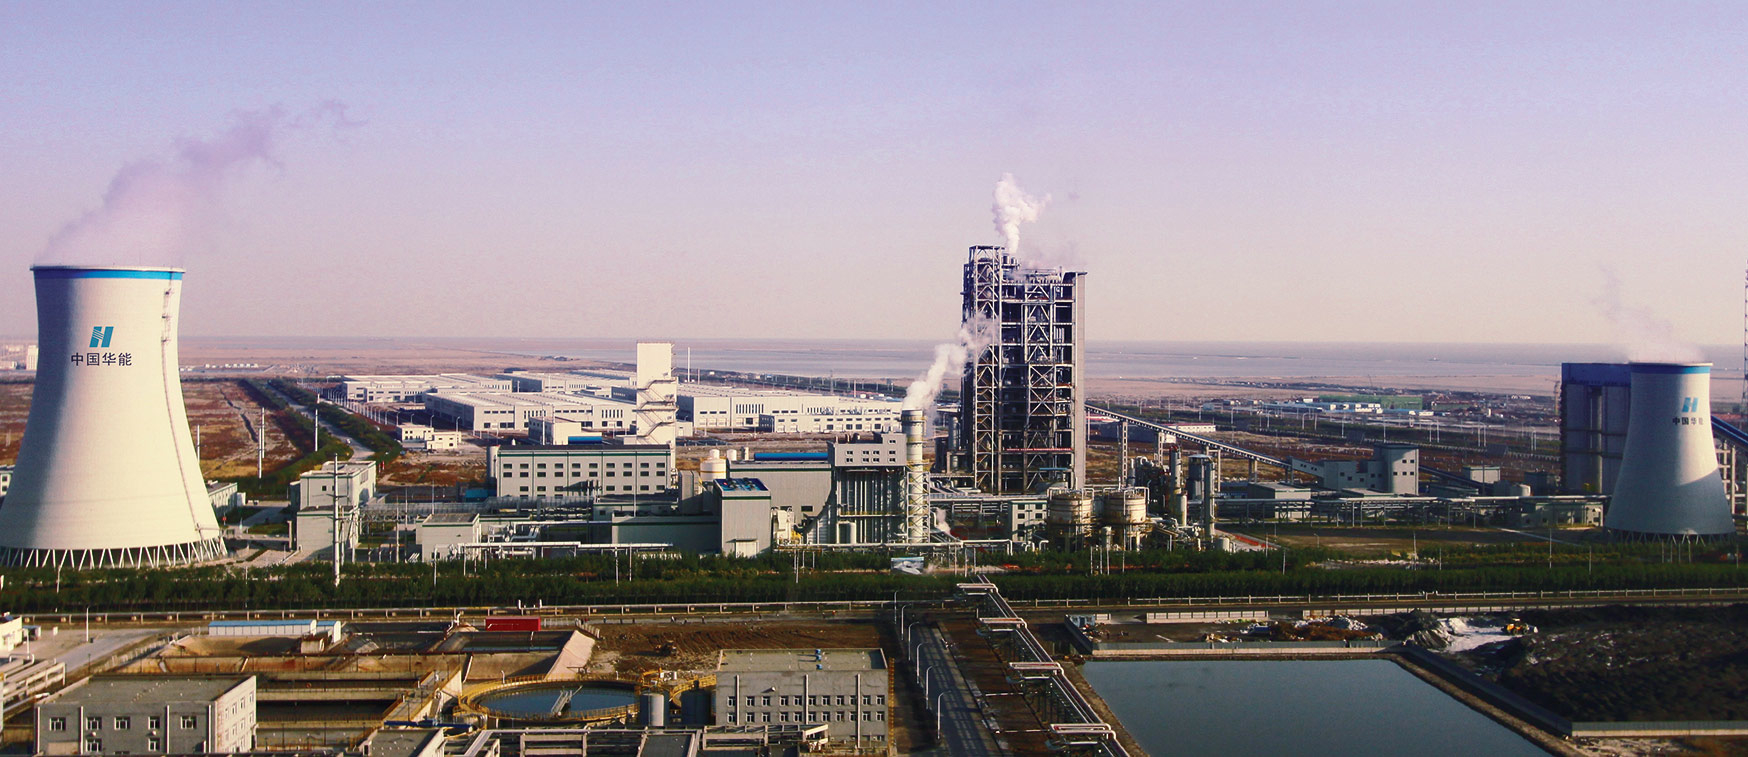 Can China Turn Carbon Capture into a Water Feature?